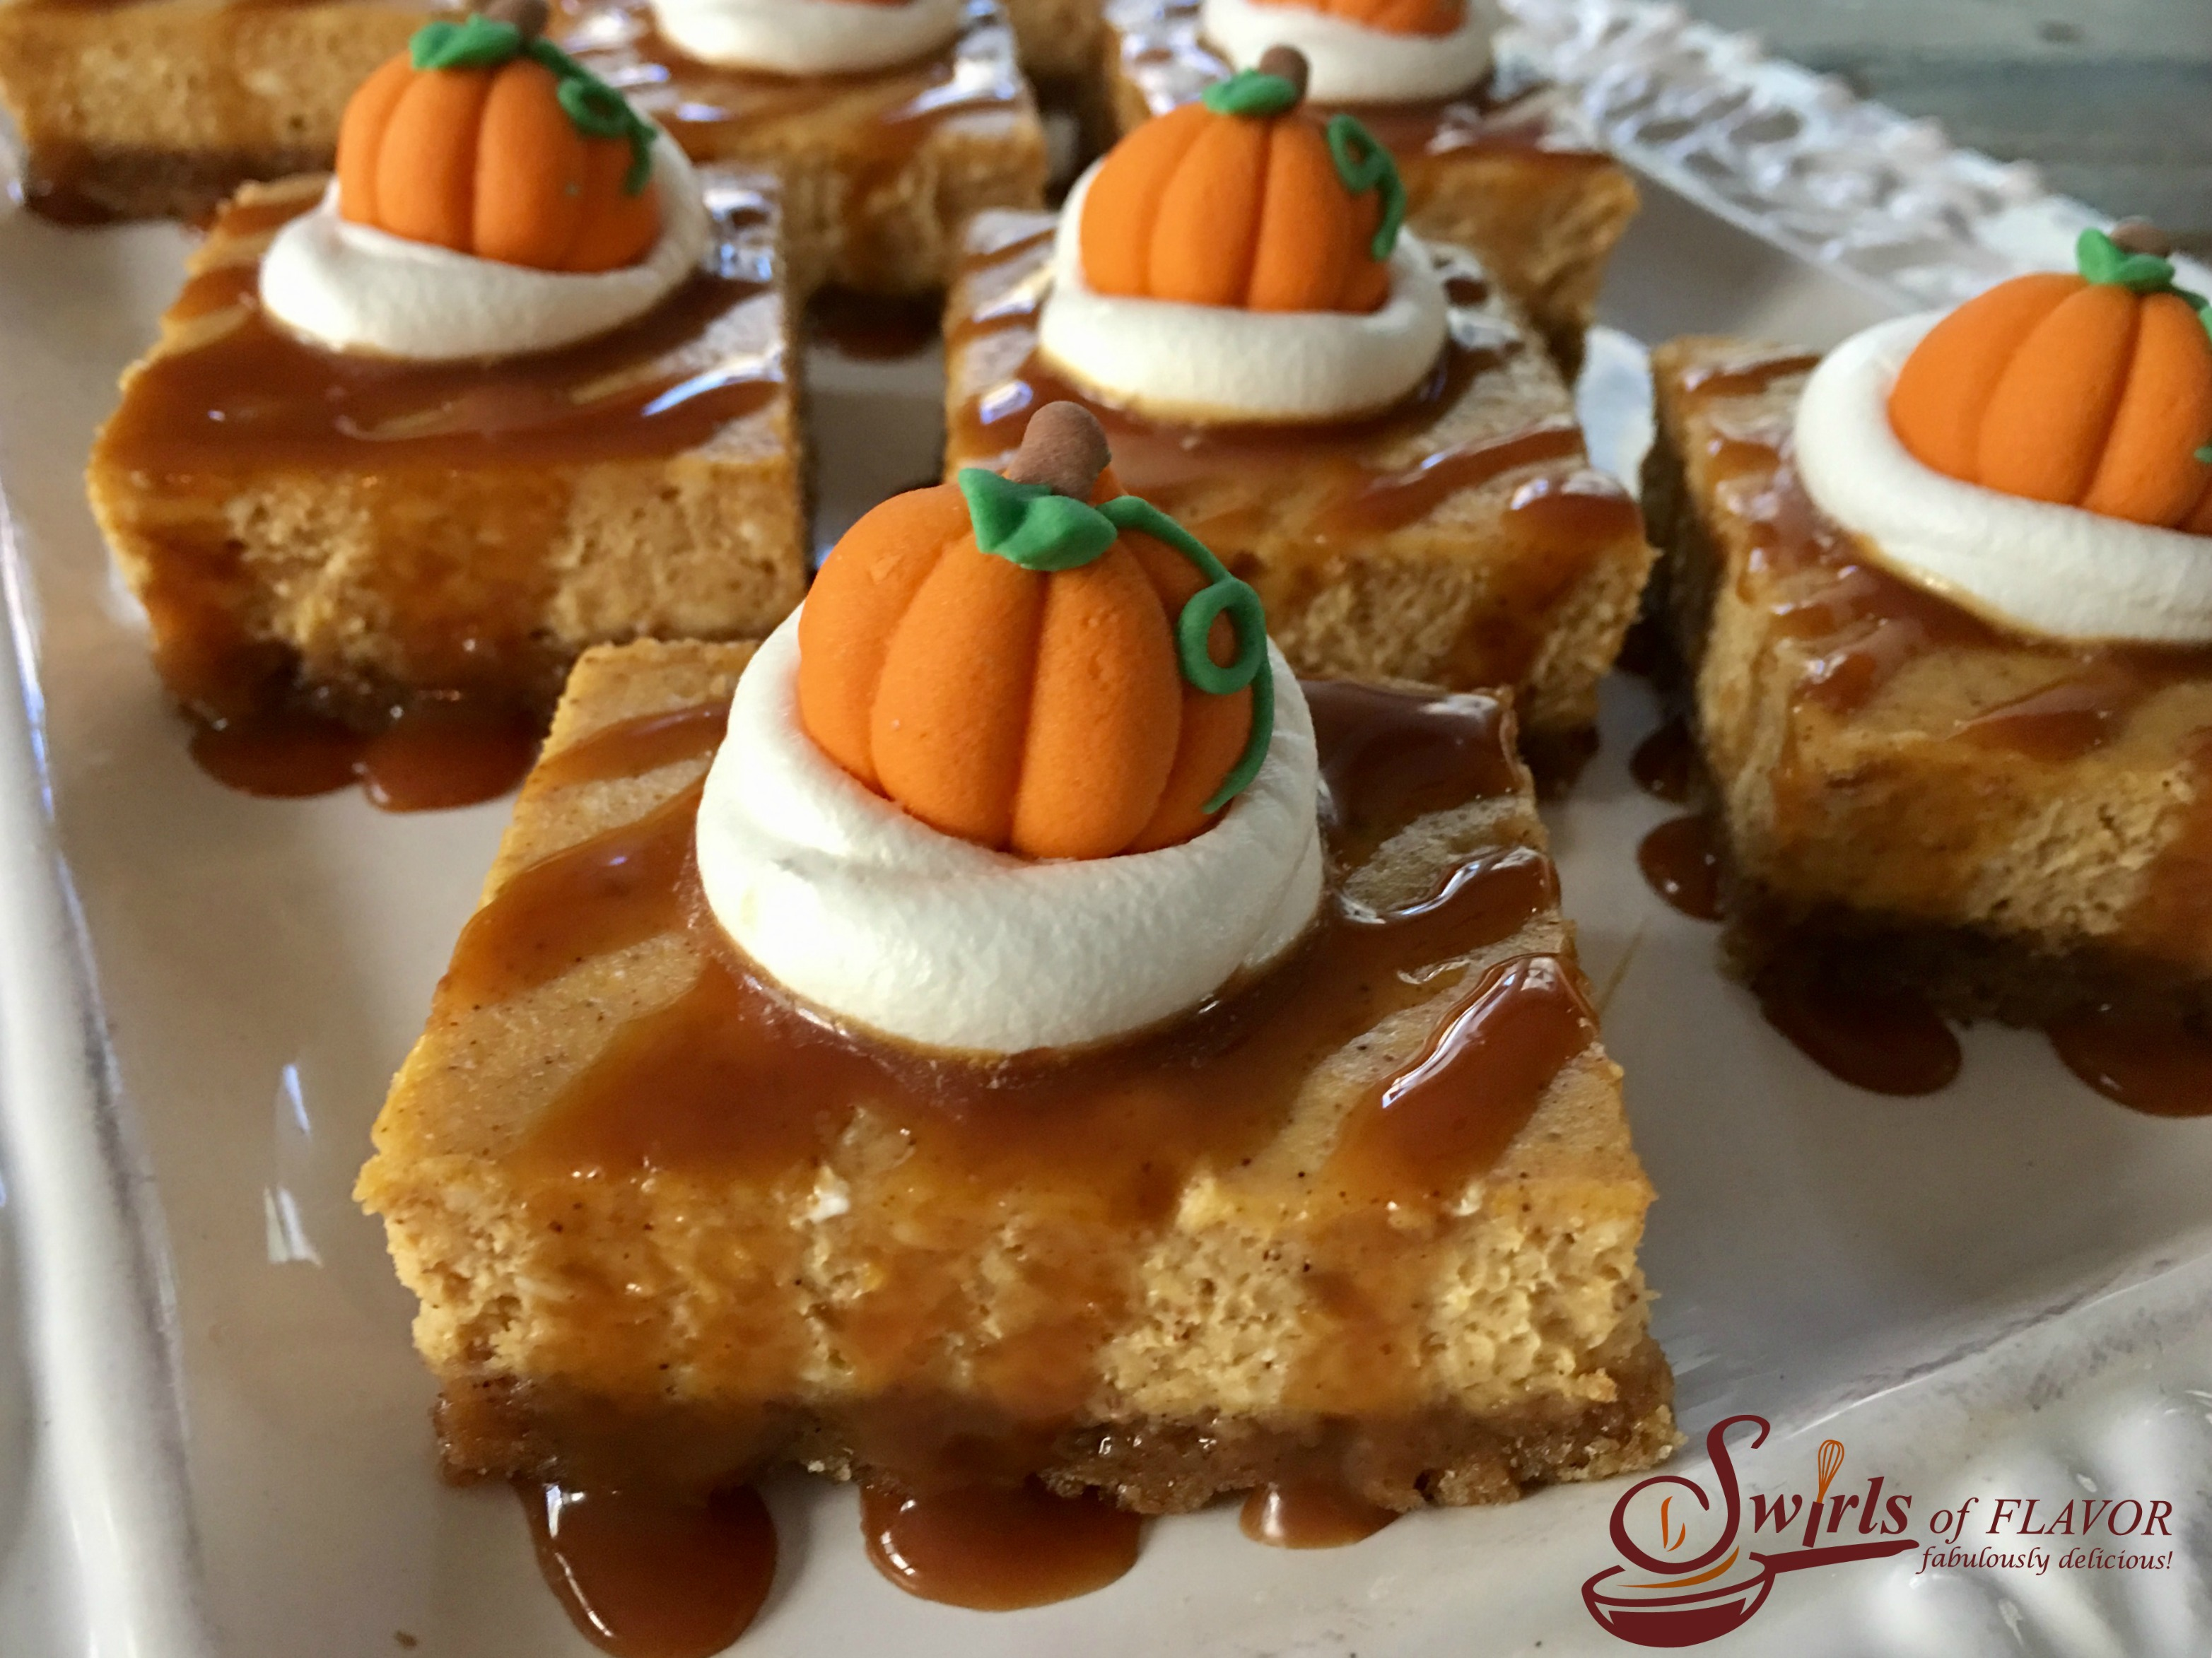 Salted Caramel Pumpkin Spice Cheesecake Bars is an easy way to make a cheesecake recipe without all the fuss. Every bite of these creamy cheesecake bars recipe is kissed by the warm holiday flavor of pumpkin pie spice and buttery cinnamon graham crust! And it's such an easy recipe to make and will impress your guests too! #pumpkinspice #pumpkincheesecake #cheesecakebars #easyrecipe #dessert #easydessert #holiday #saltedcaramel #pumpkincheesecakebars #pumpkinpuree #pumpkinpiespice #swirlsofflavor